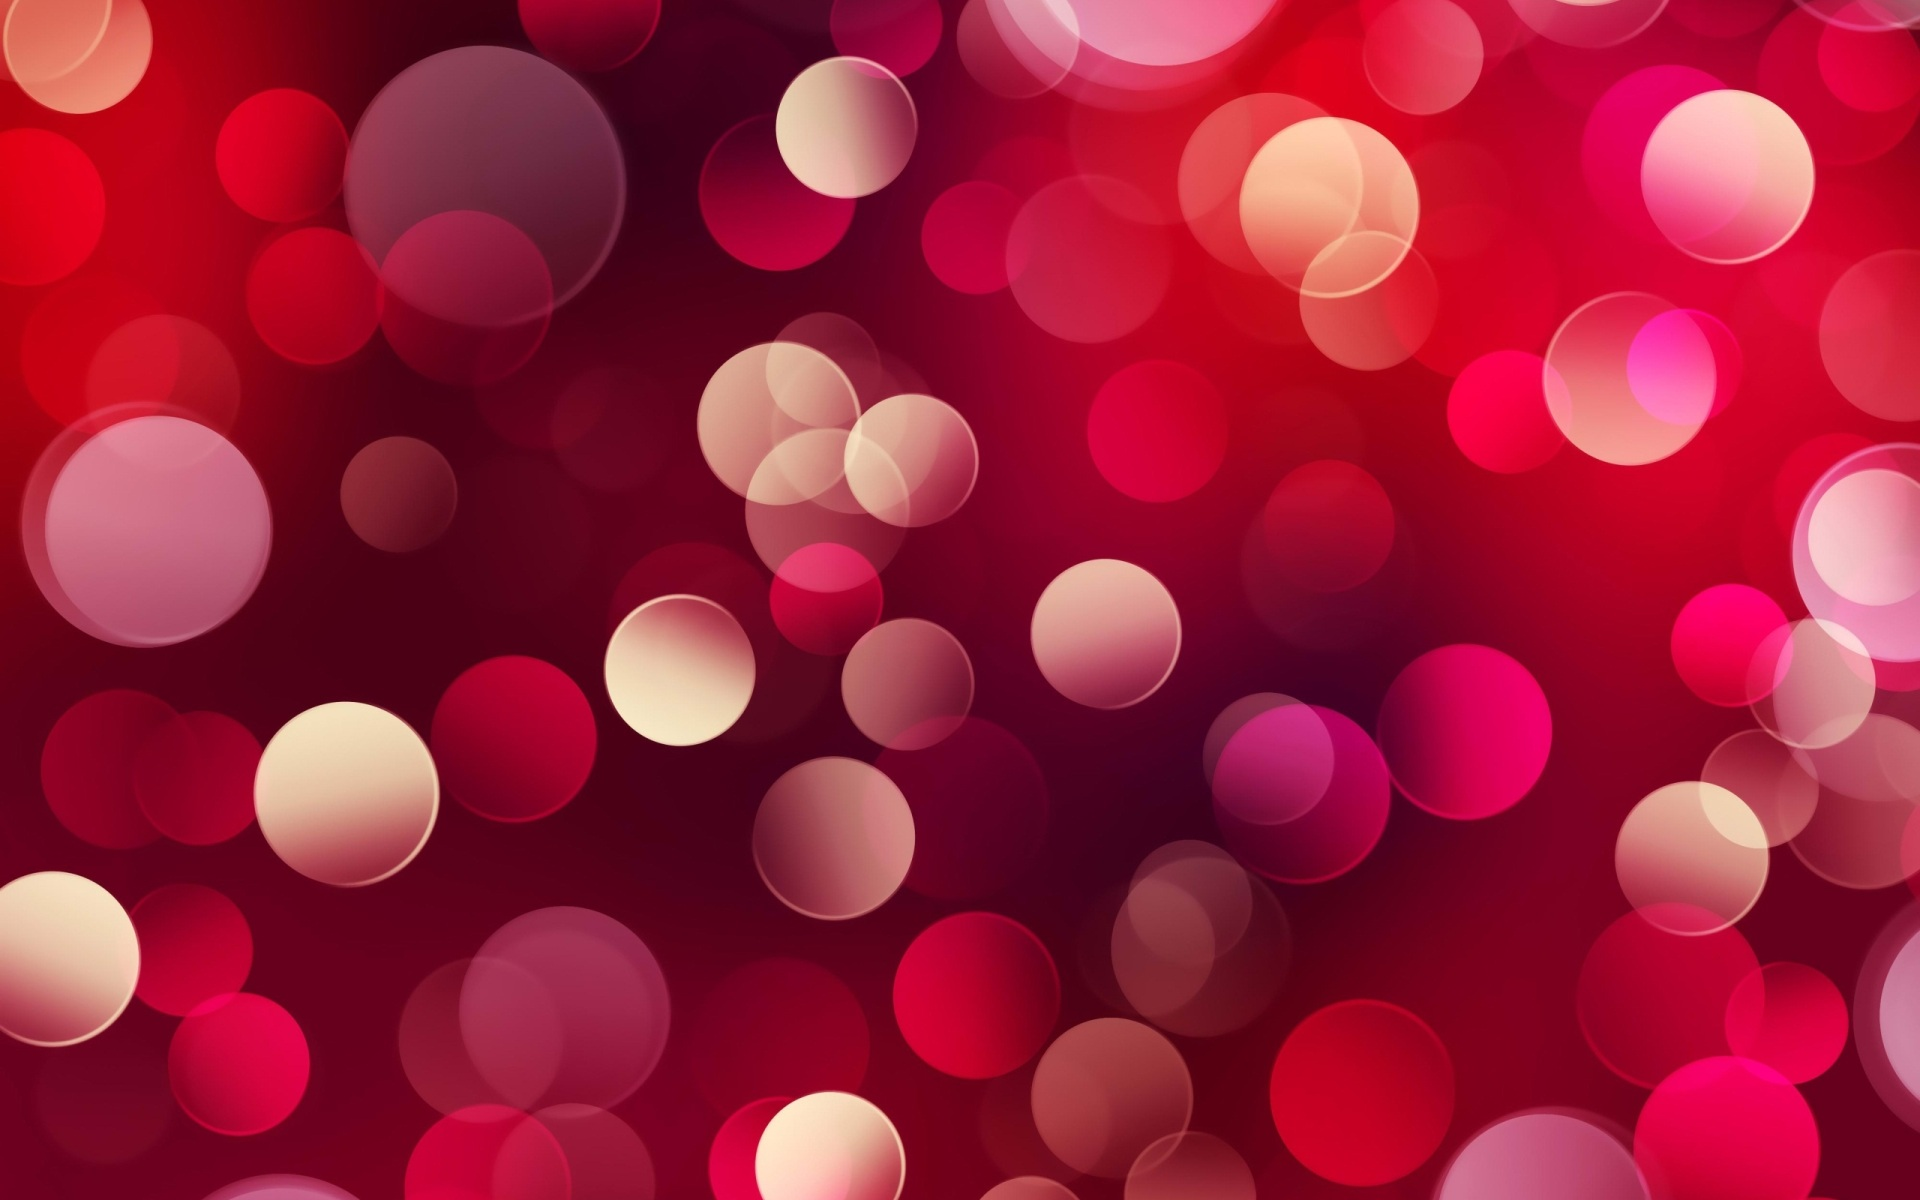 Bokeh Wallpapers HD Pictures One HD Wallpaper Pictures 1920x1200